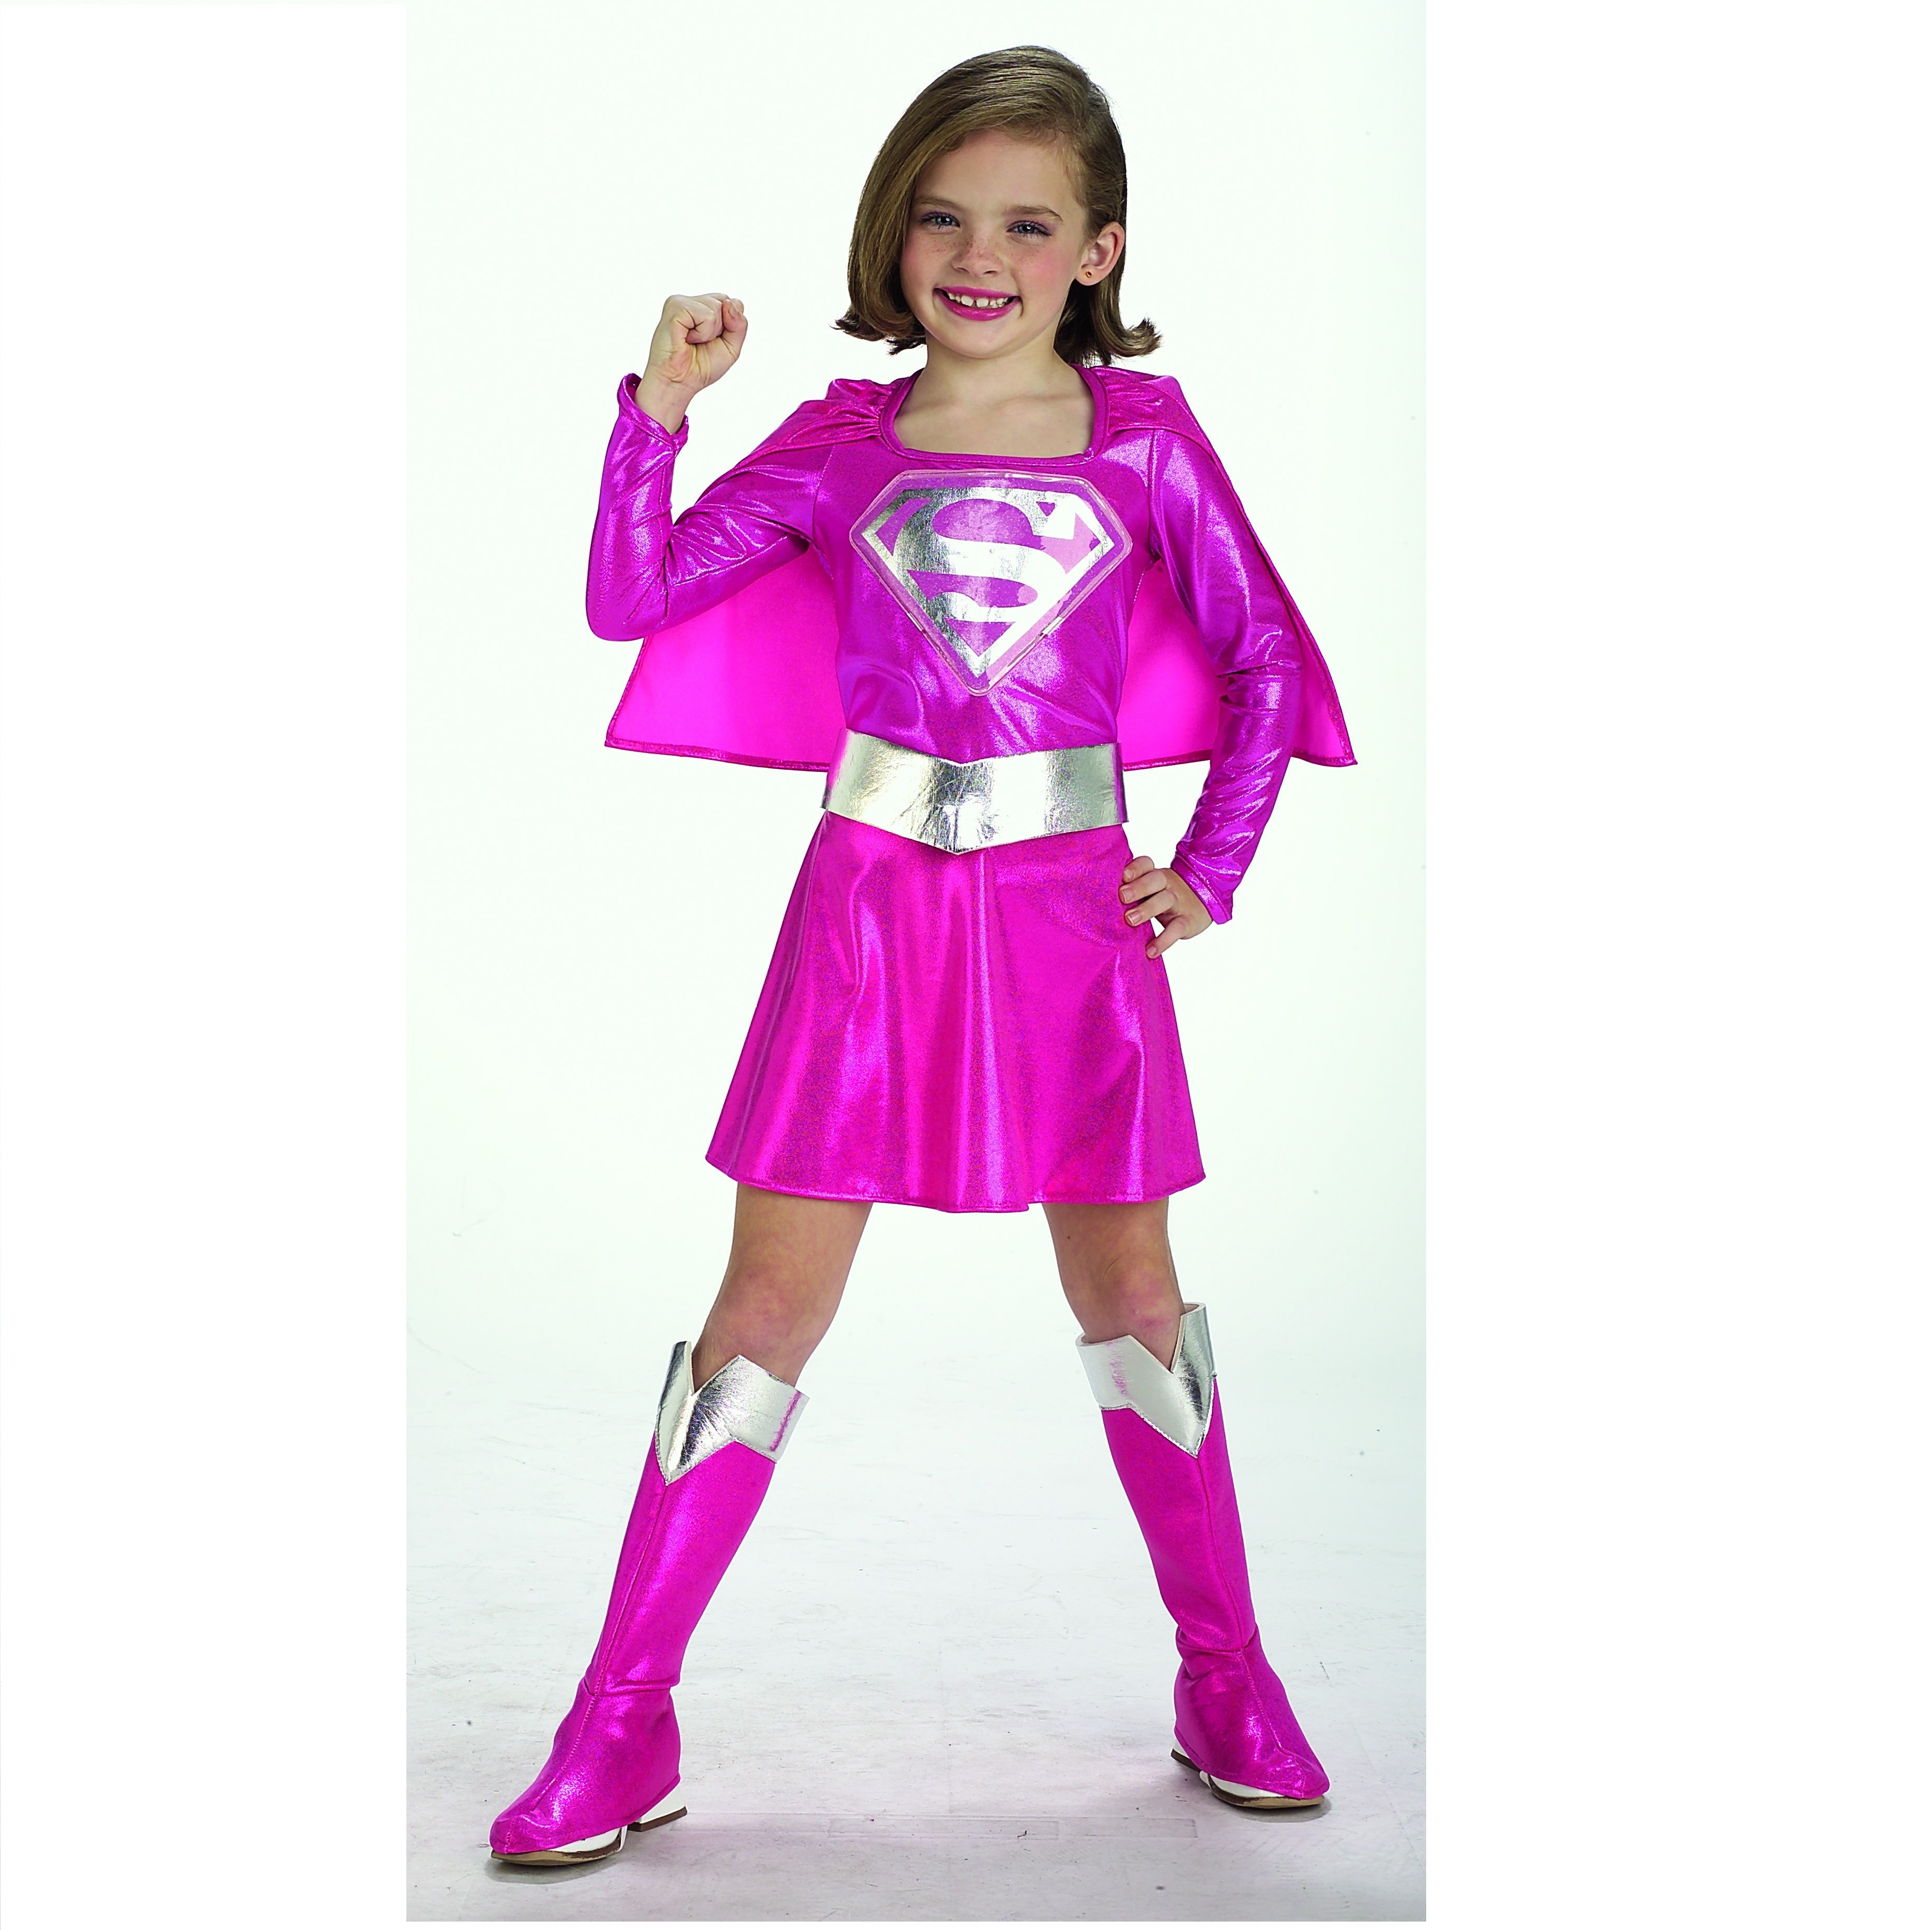 Rubie's Kid's Halloween Costumes - Supergirl (Many Other Girls and Boy's Costumes)